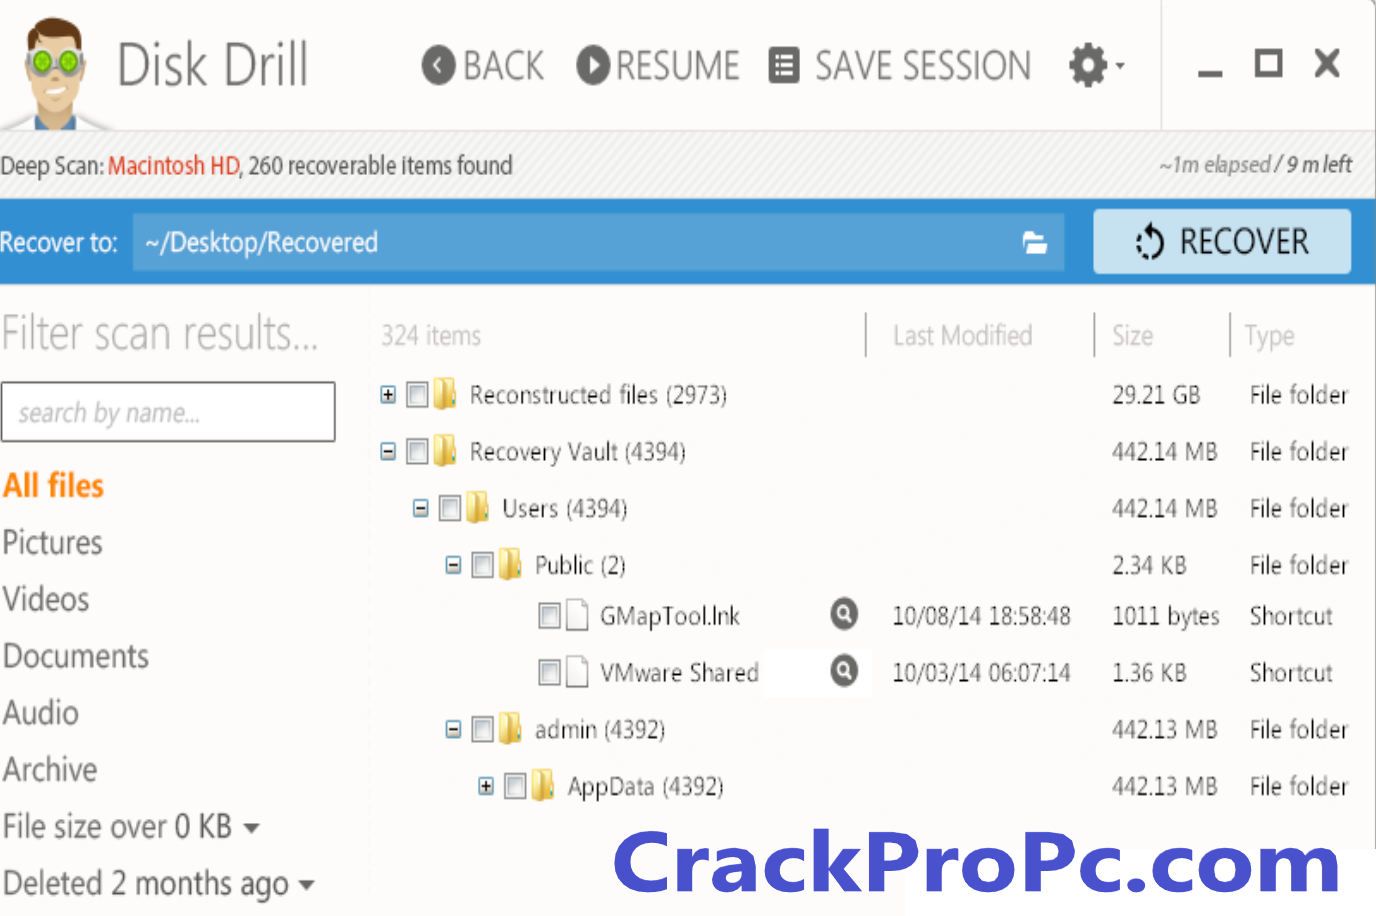 Disk Drill Pro 4.3.586.0 Crack Activation Code Latest Free Download 2021